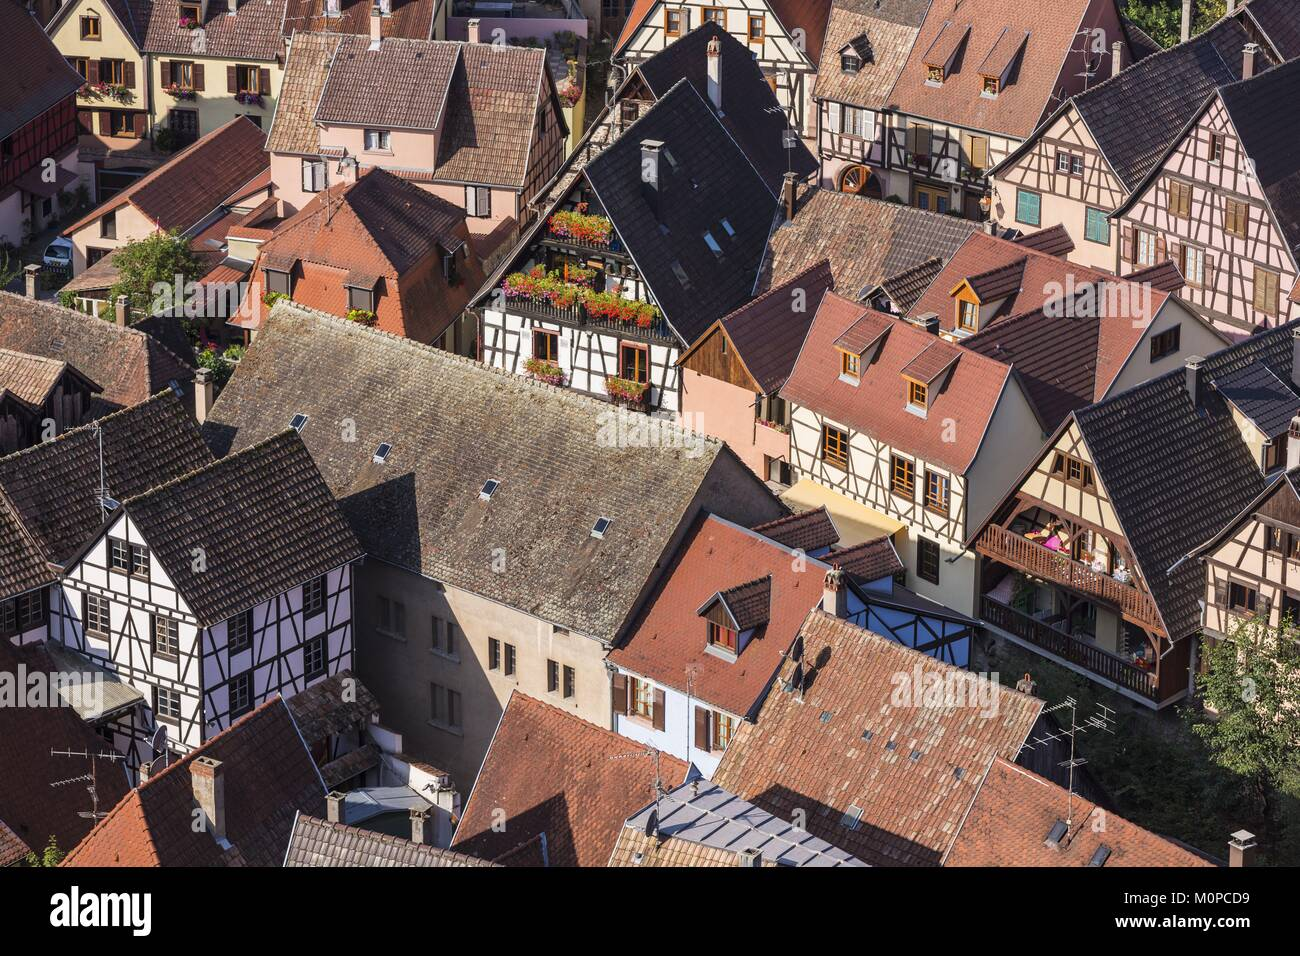 France,Haut Rhin,Route des Vins d'Alsace,Kaysersberg ,half timbered houses - Stock Image